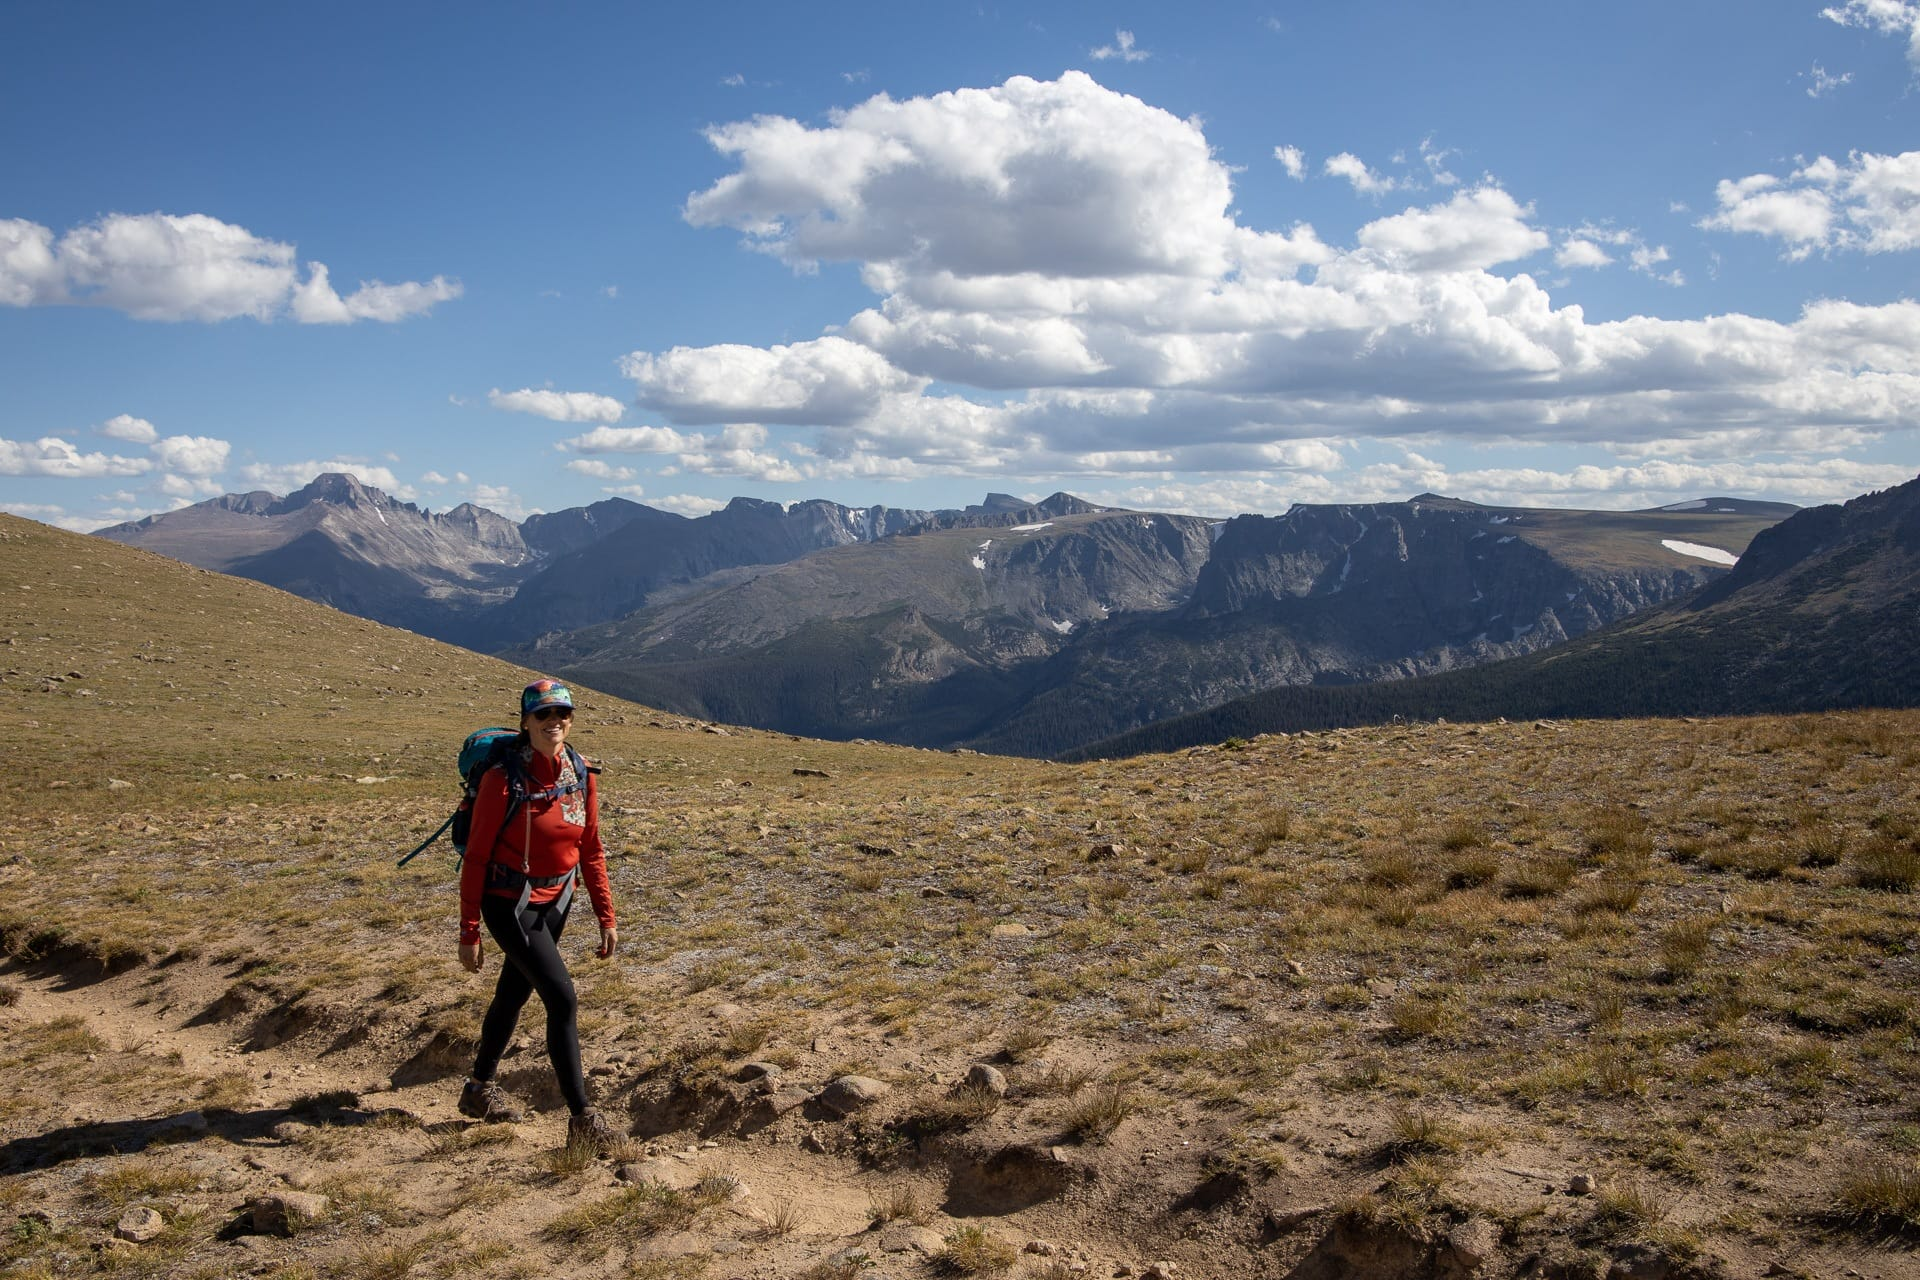 Check out the best daypacks for hiking including our personal favorites and get tips for finding the right fit, capacity & technical features.